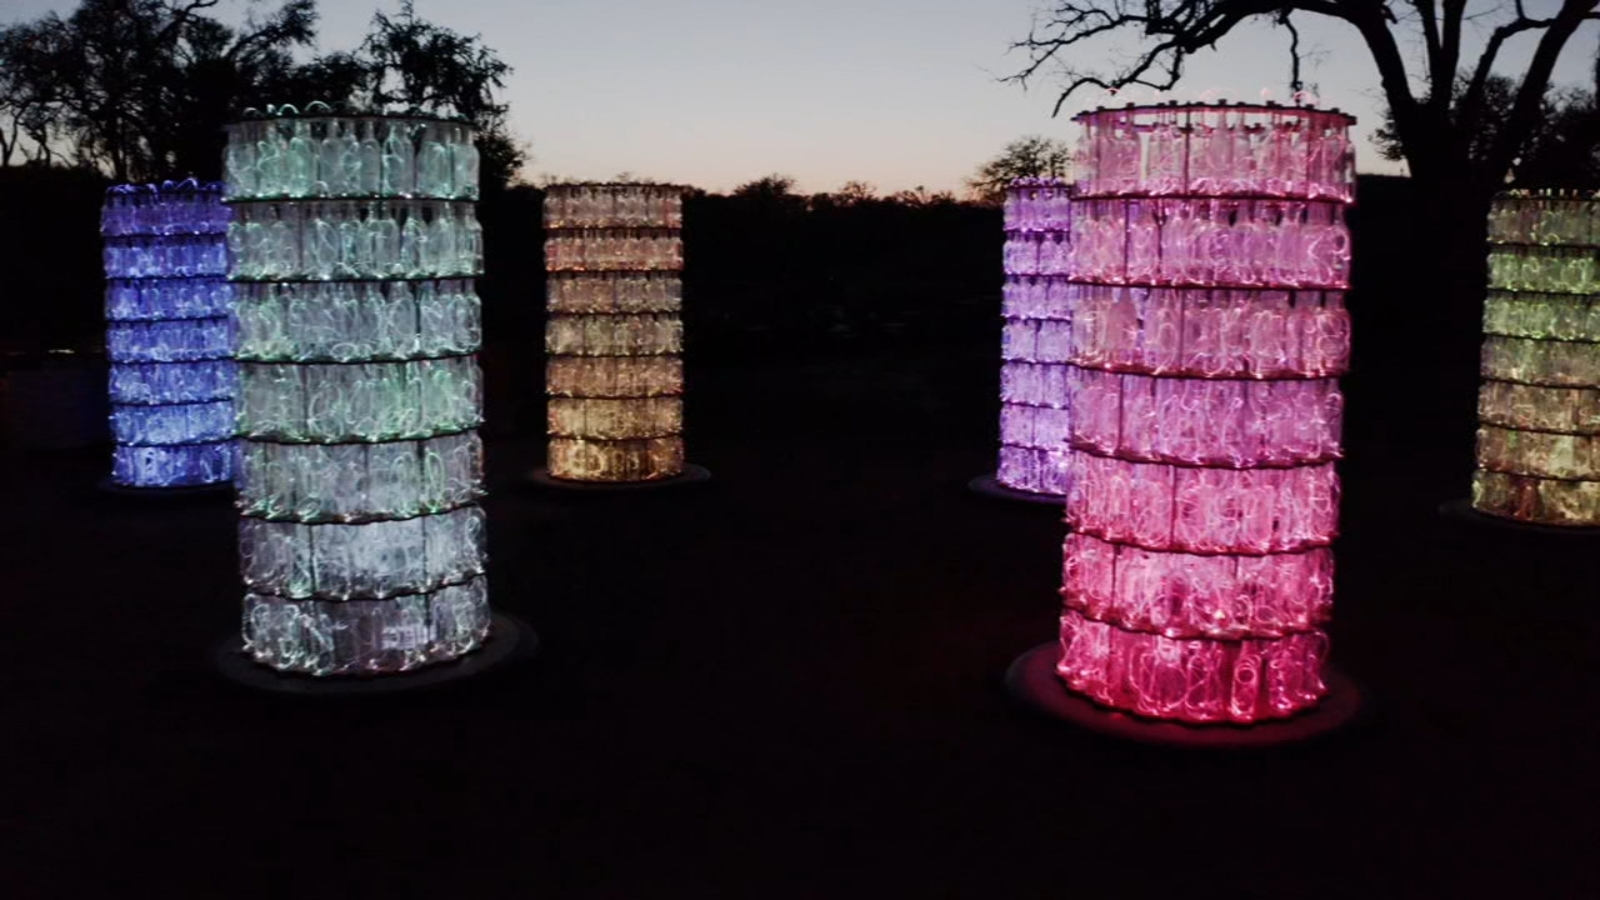 'Field of Light' exhibit in Paso Robles is back - with a brand new addition!